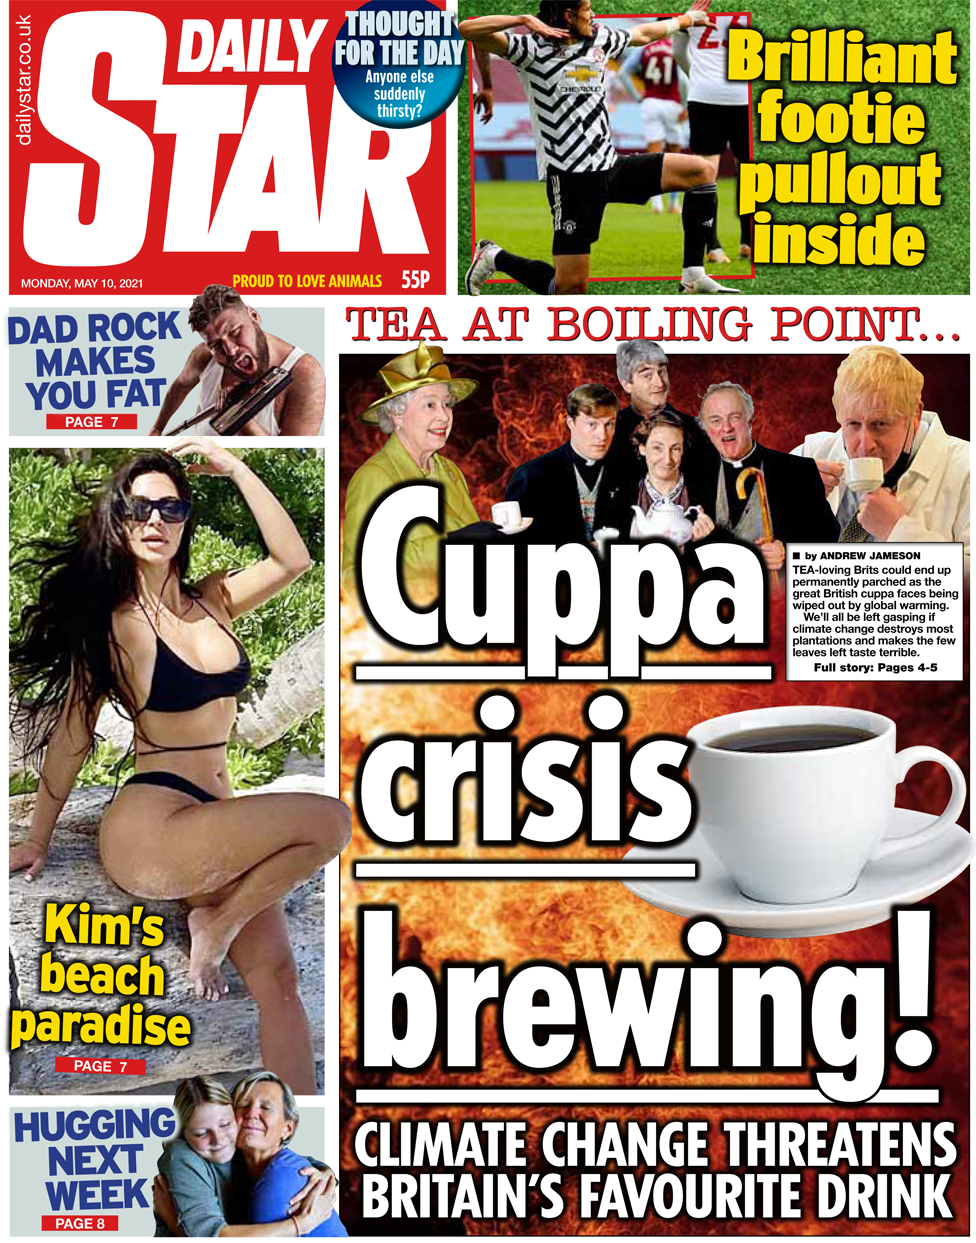 The Daily Star front page 10 May 2021